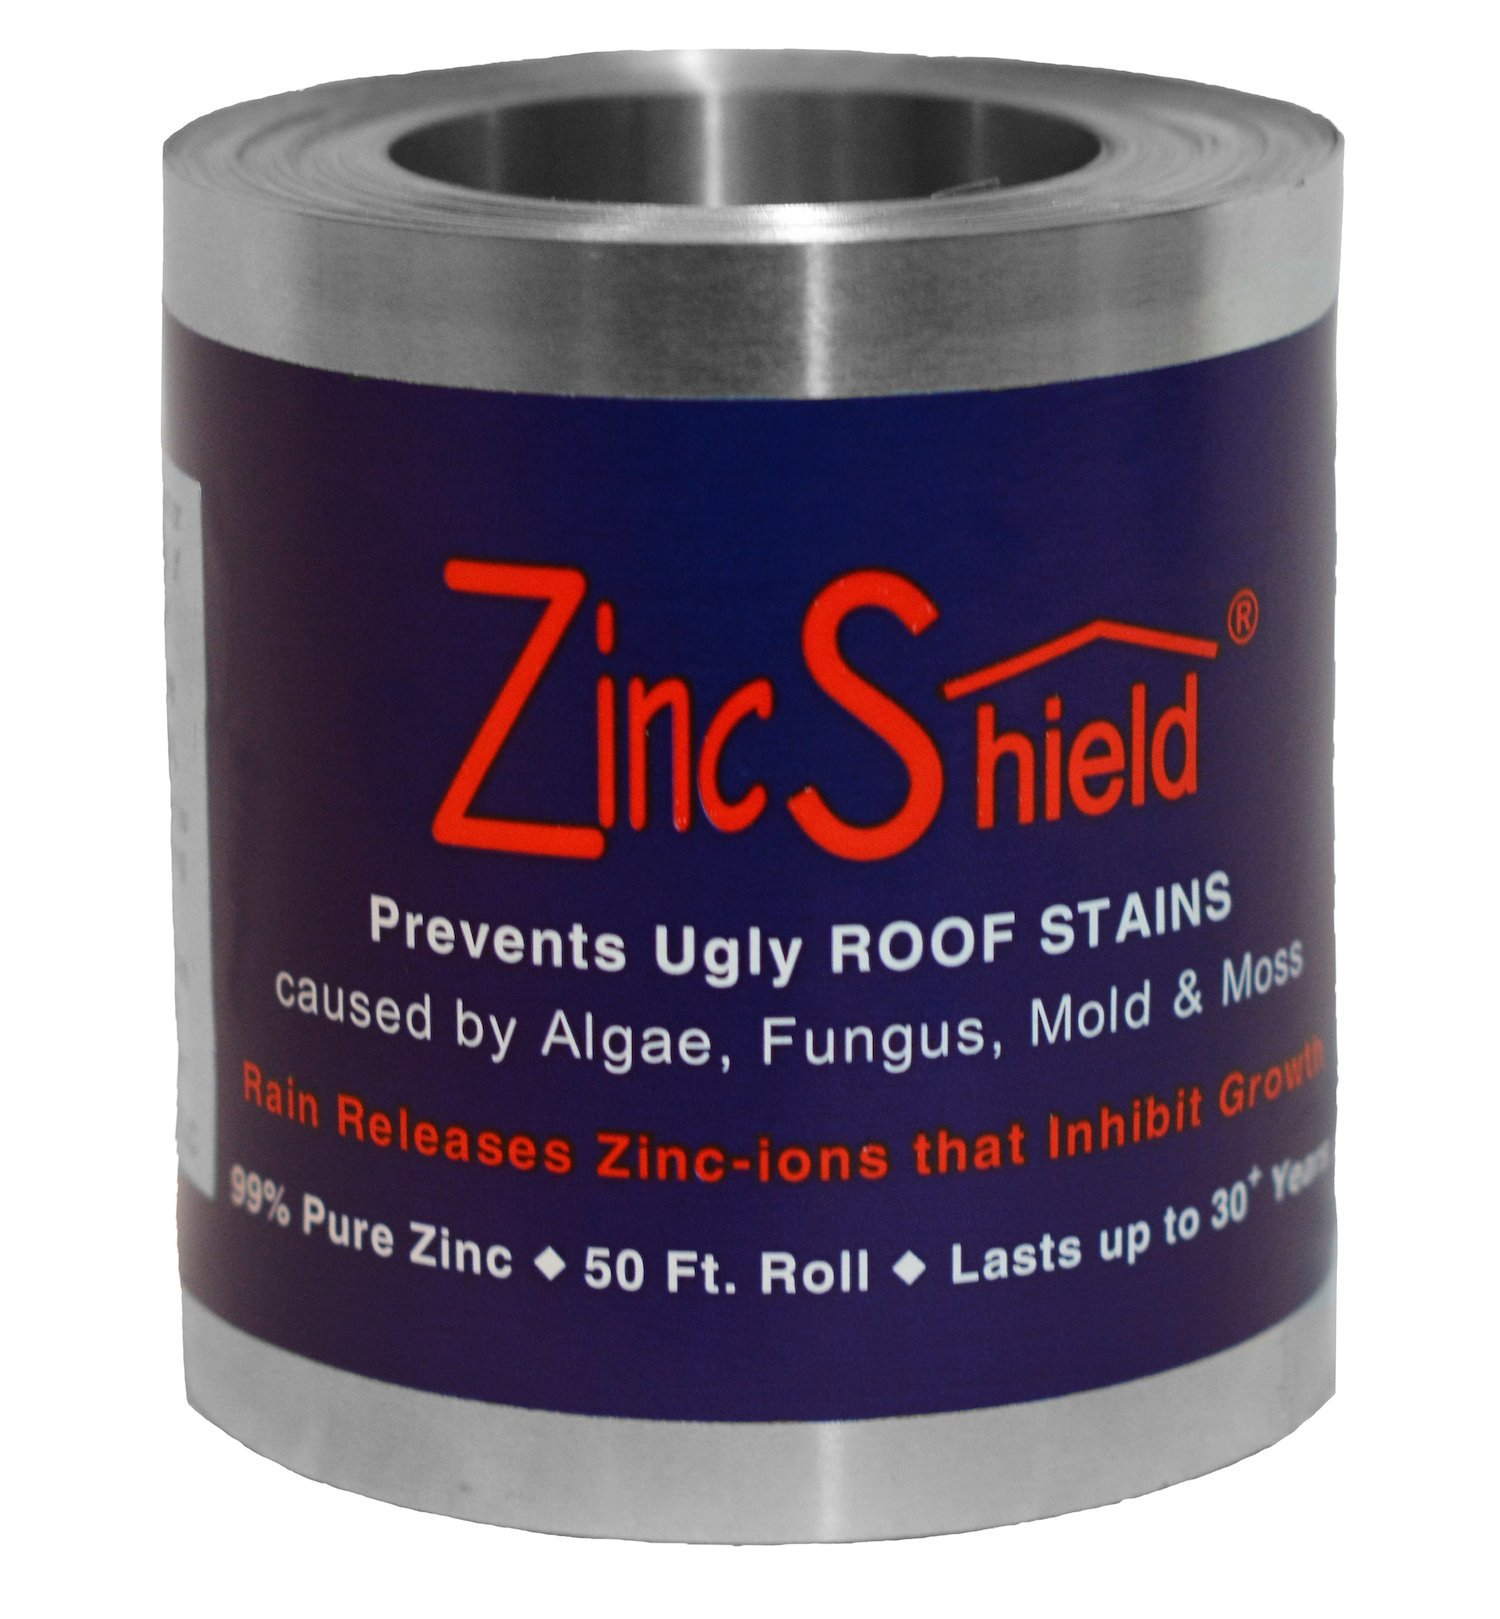 ZincShield Nail Set - Includes (2) x 3.5'' 50 Ft. Roll & (2) x Bag of Nails Installation Kit to Avoid Ugly Roof Stains from Moss, Algae, Fungus, and Mildew - Made in the USA